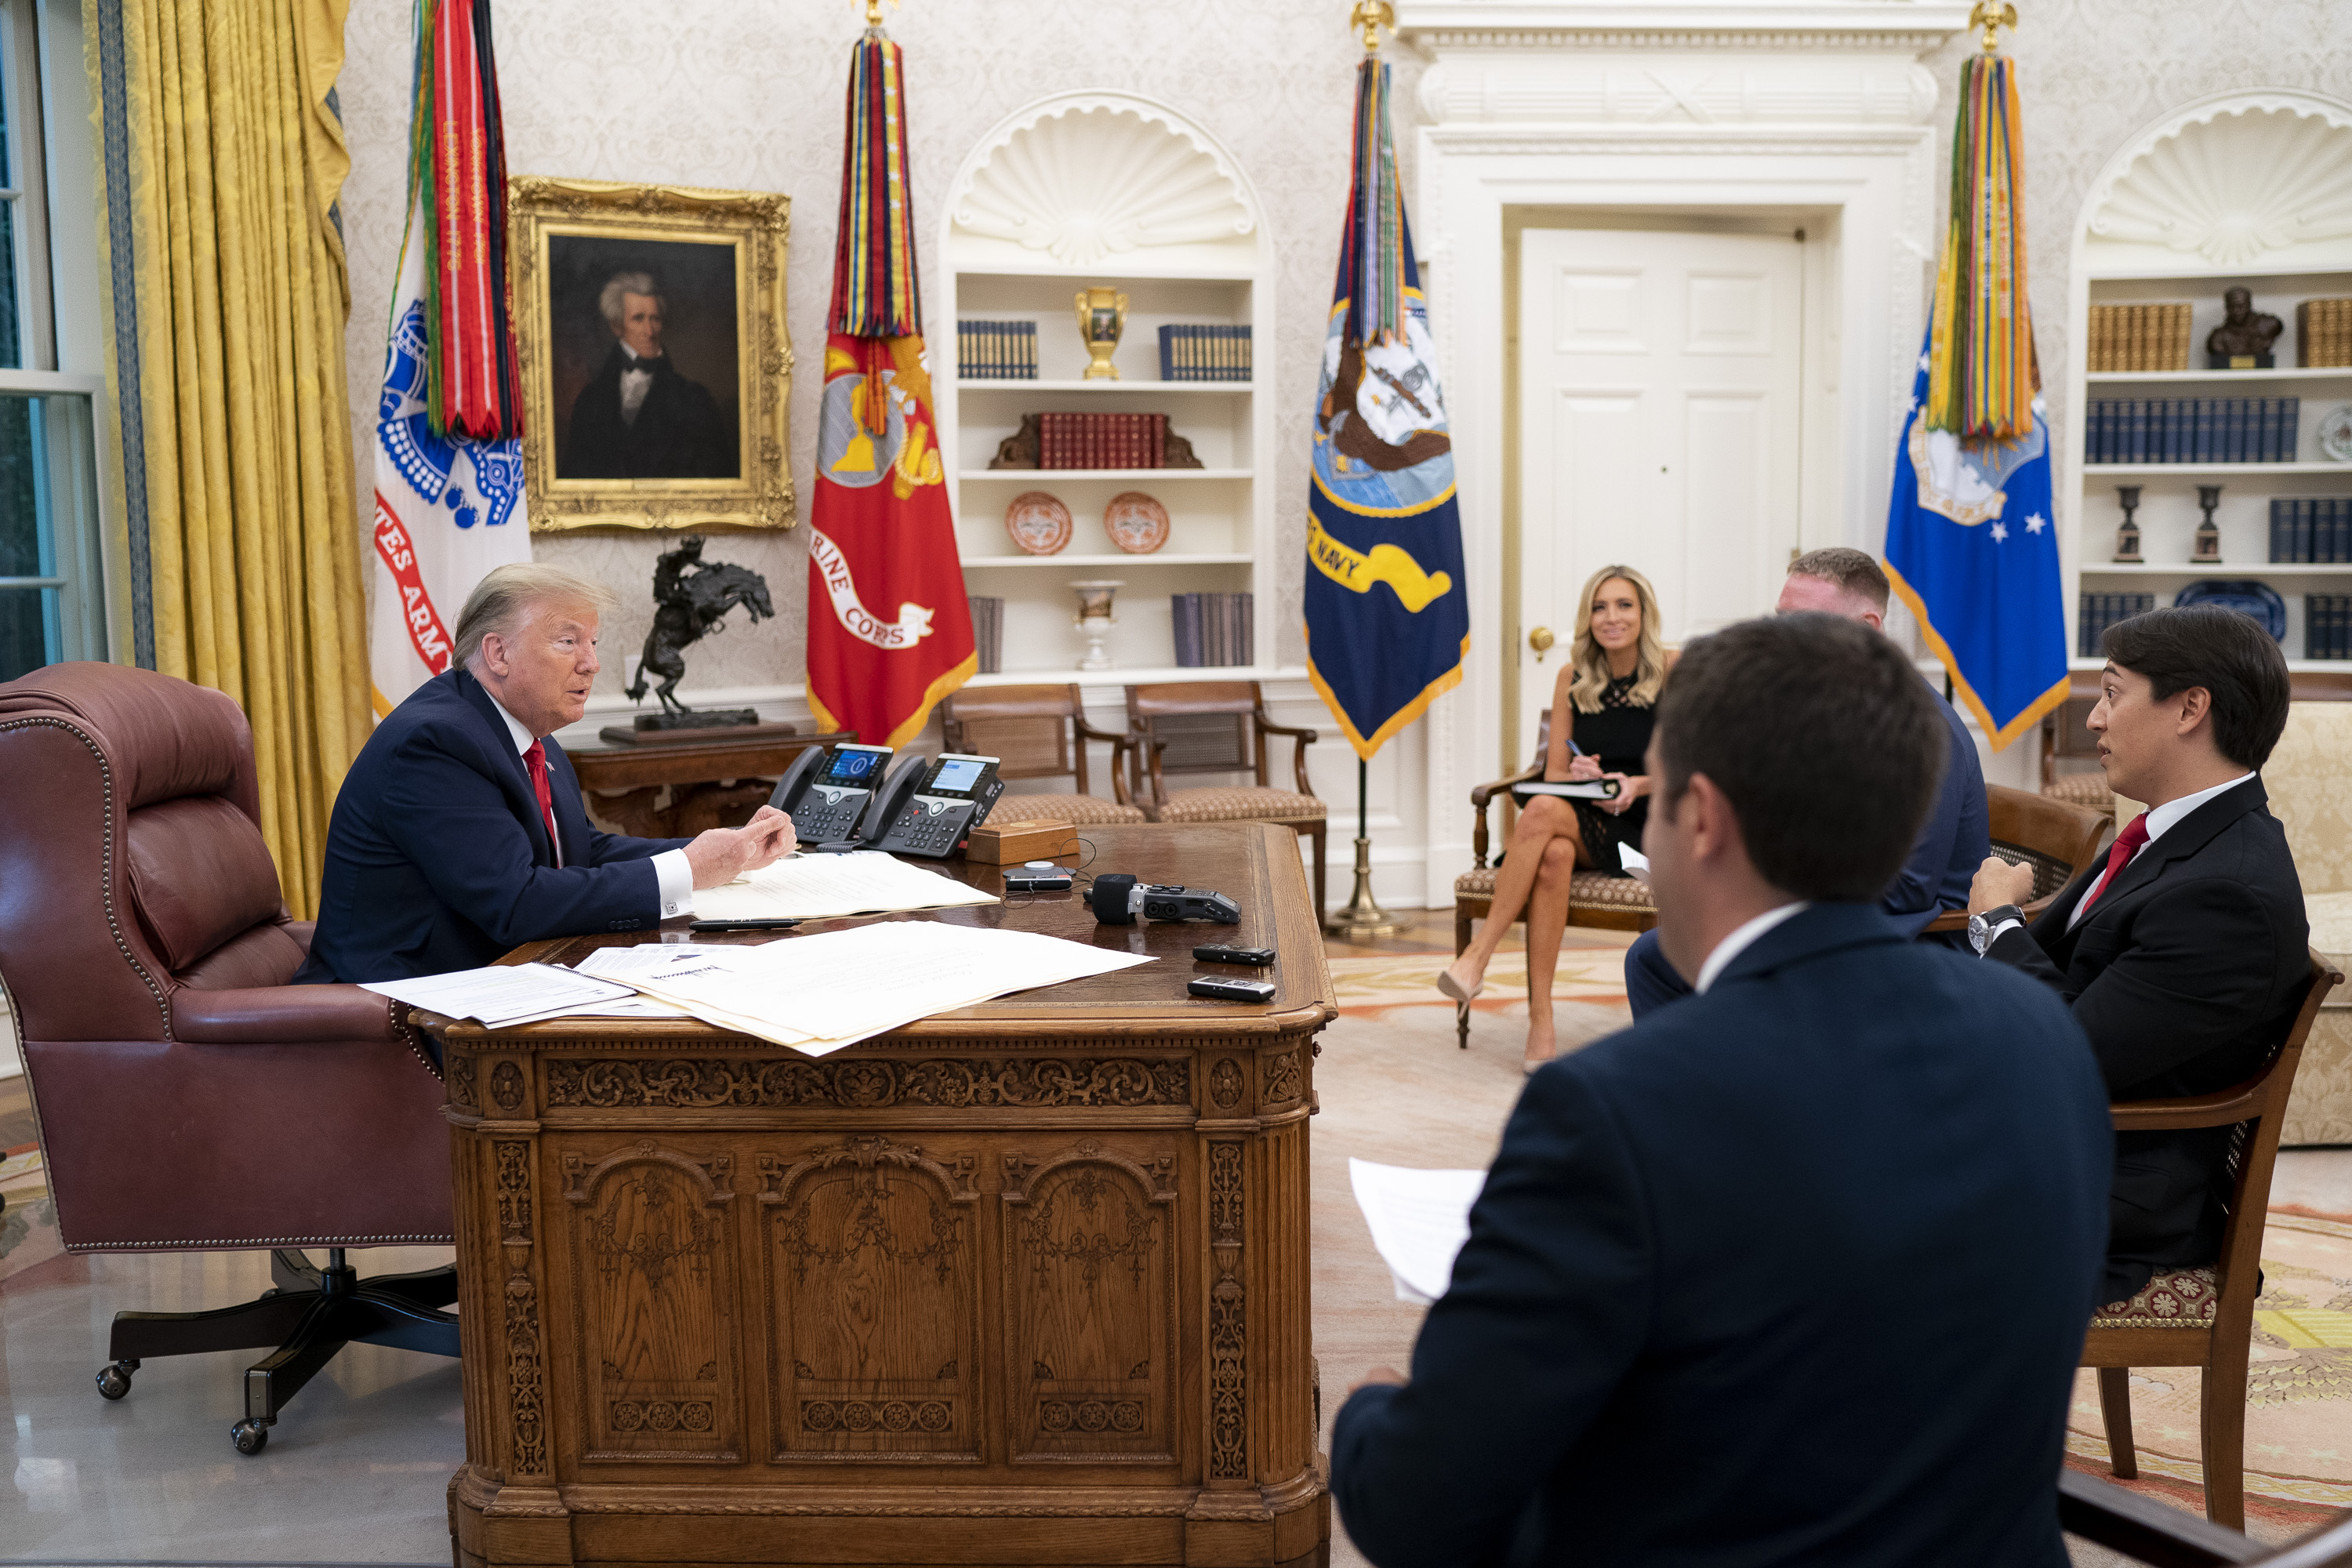 President Donald Trump sits down for an Oval Office interview with Daily Caller's Christian Datoc, Vince Coglianese, and Geoff Ingersoll (White House Photo by Tia Dufour)